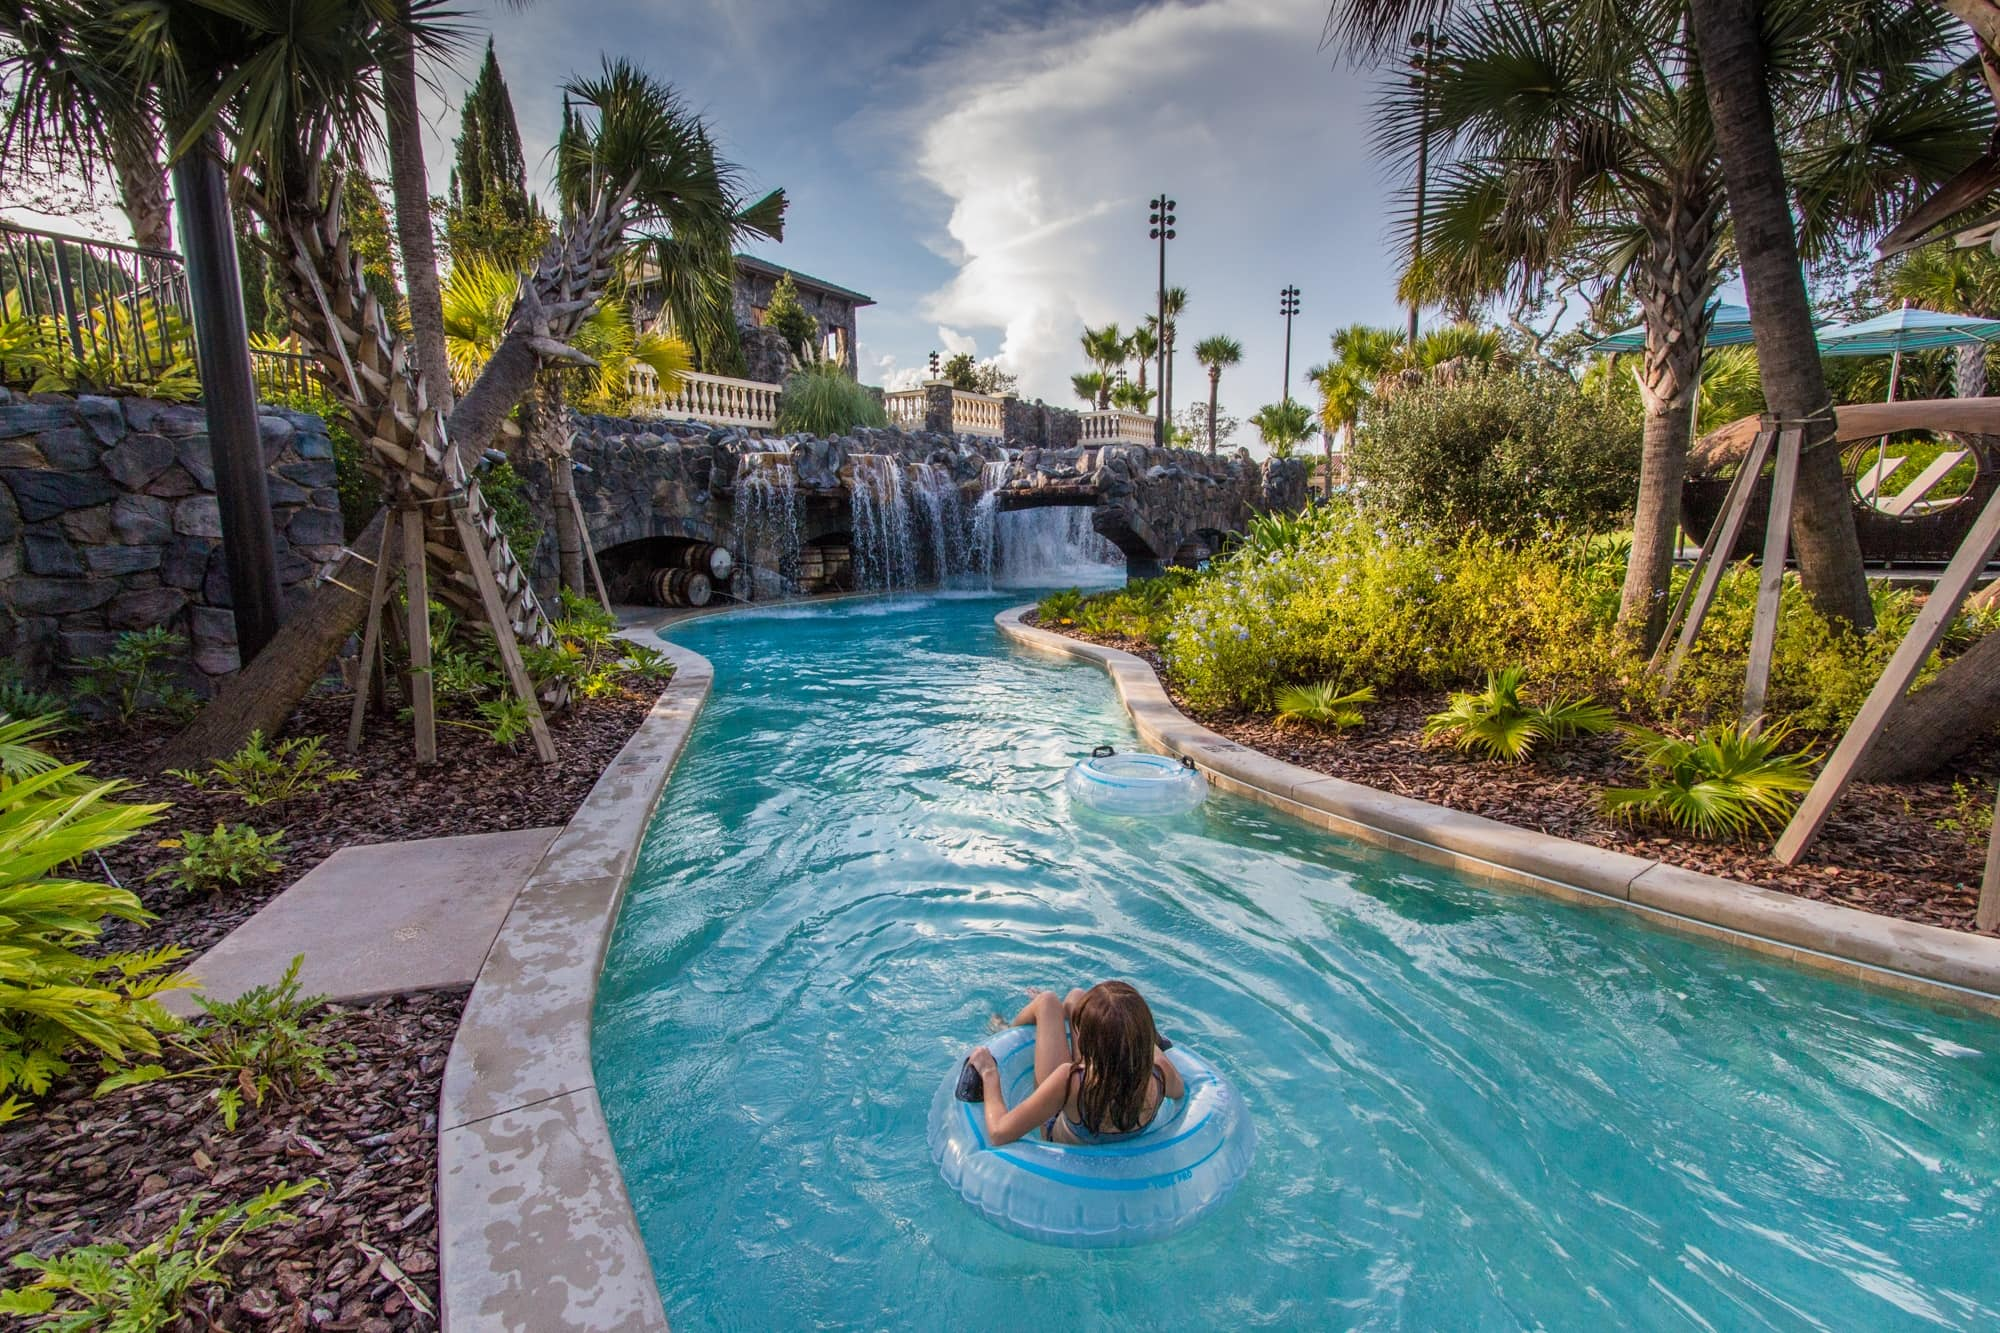 13 Best Hotels With Lazy Rivers Recommended By Travel Experts Travelmamas Com